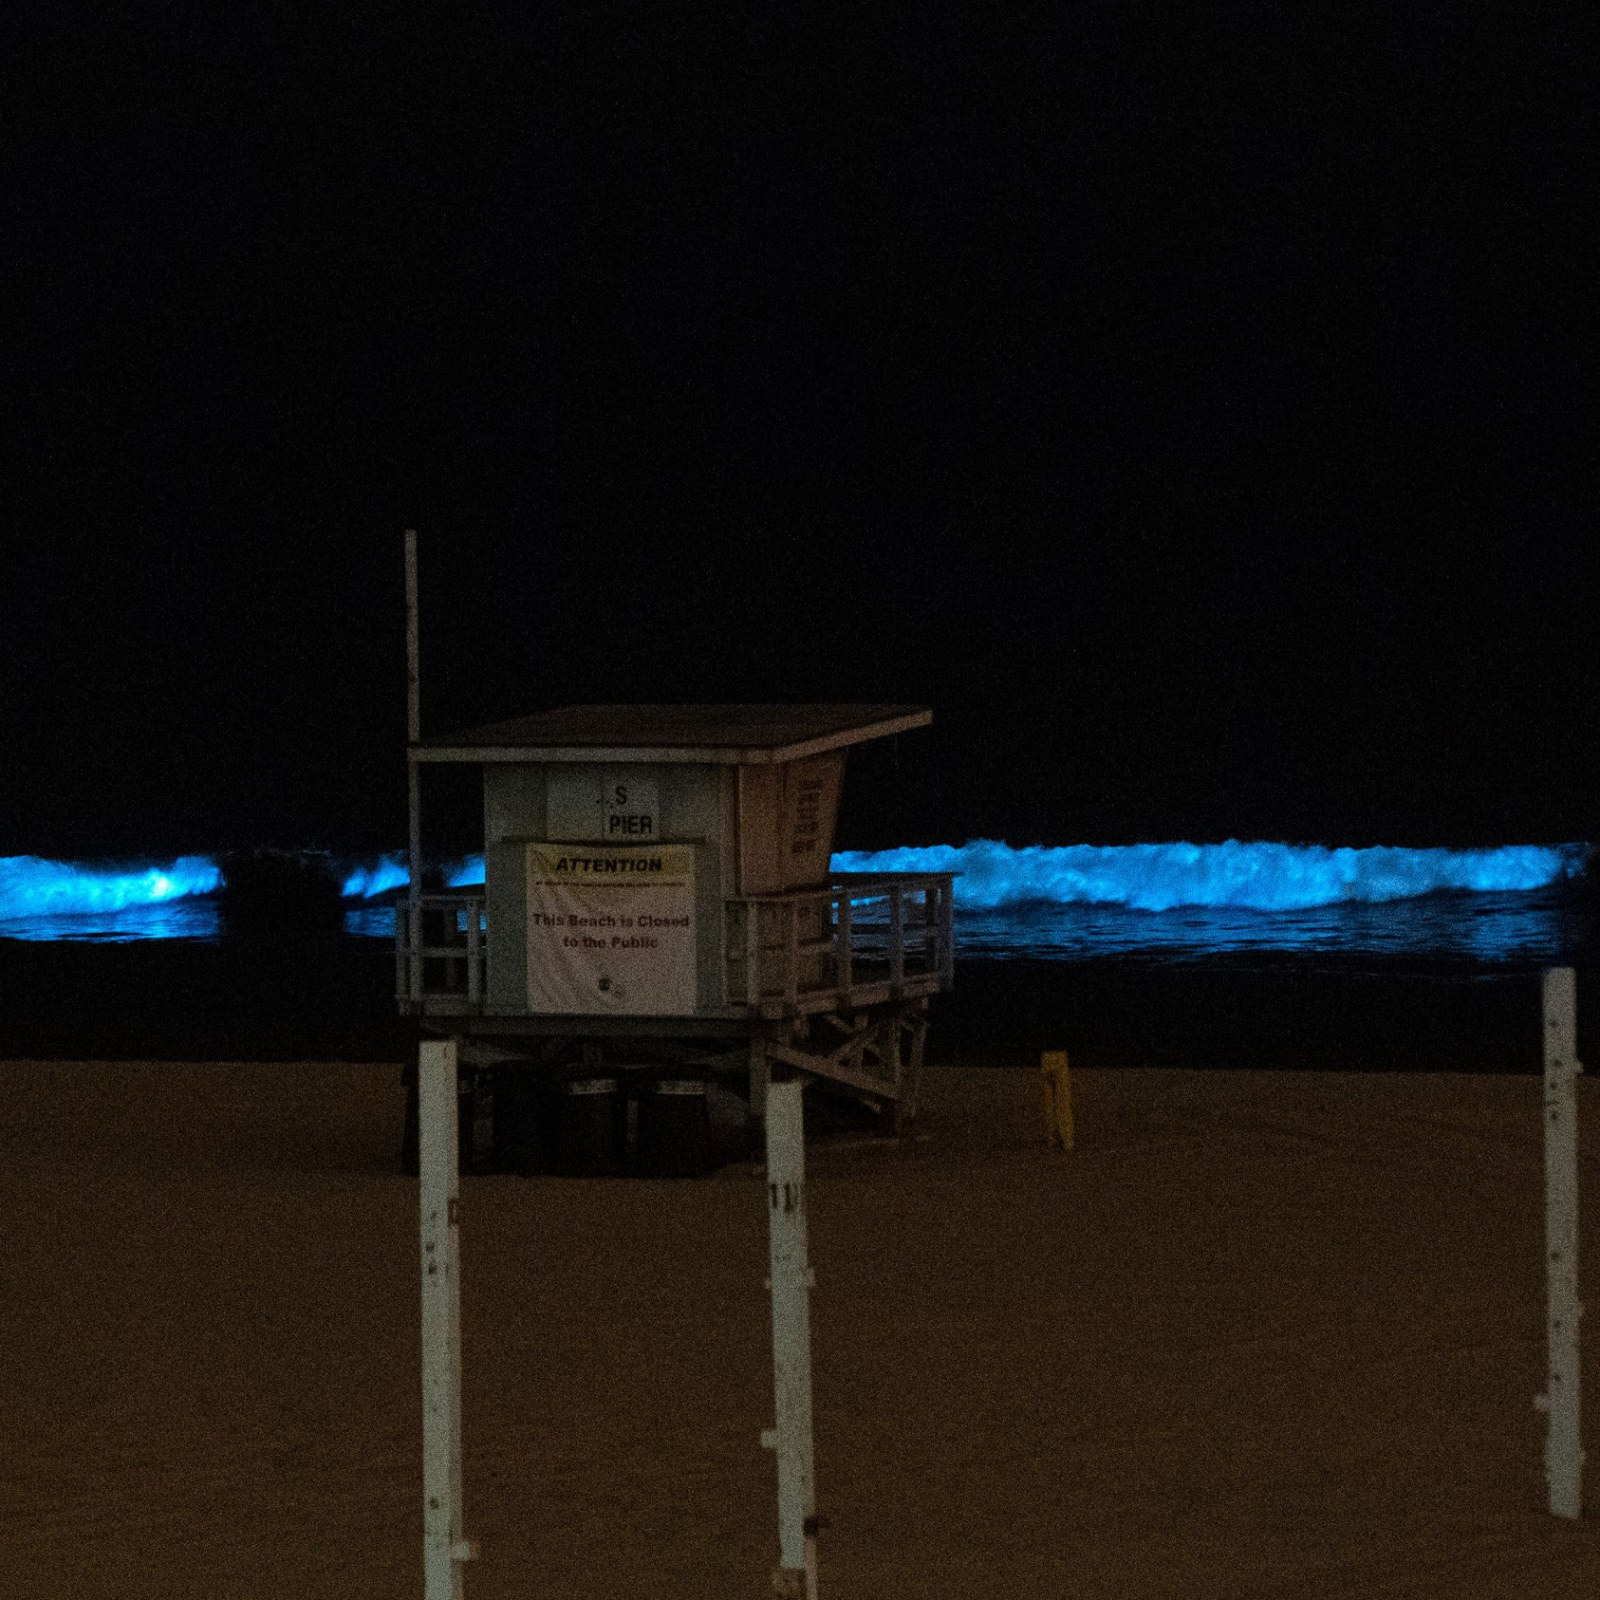 Glowing Blue Waves Reported Across Southern California Coast Due To Red Tide Phenomenon